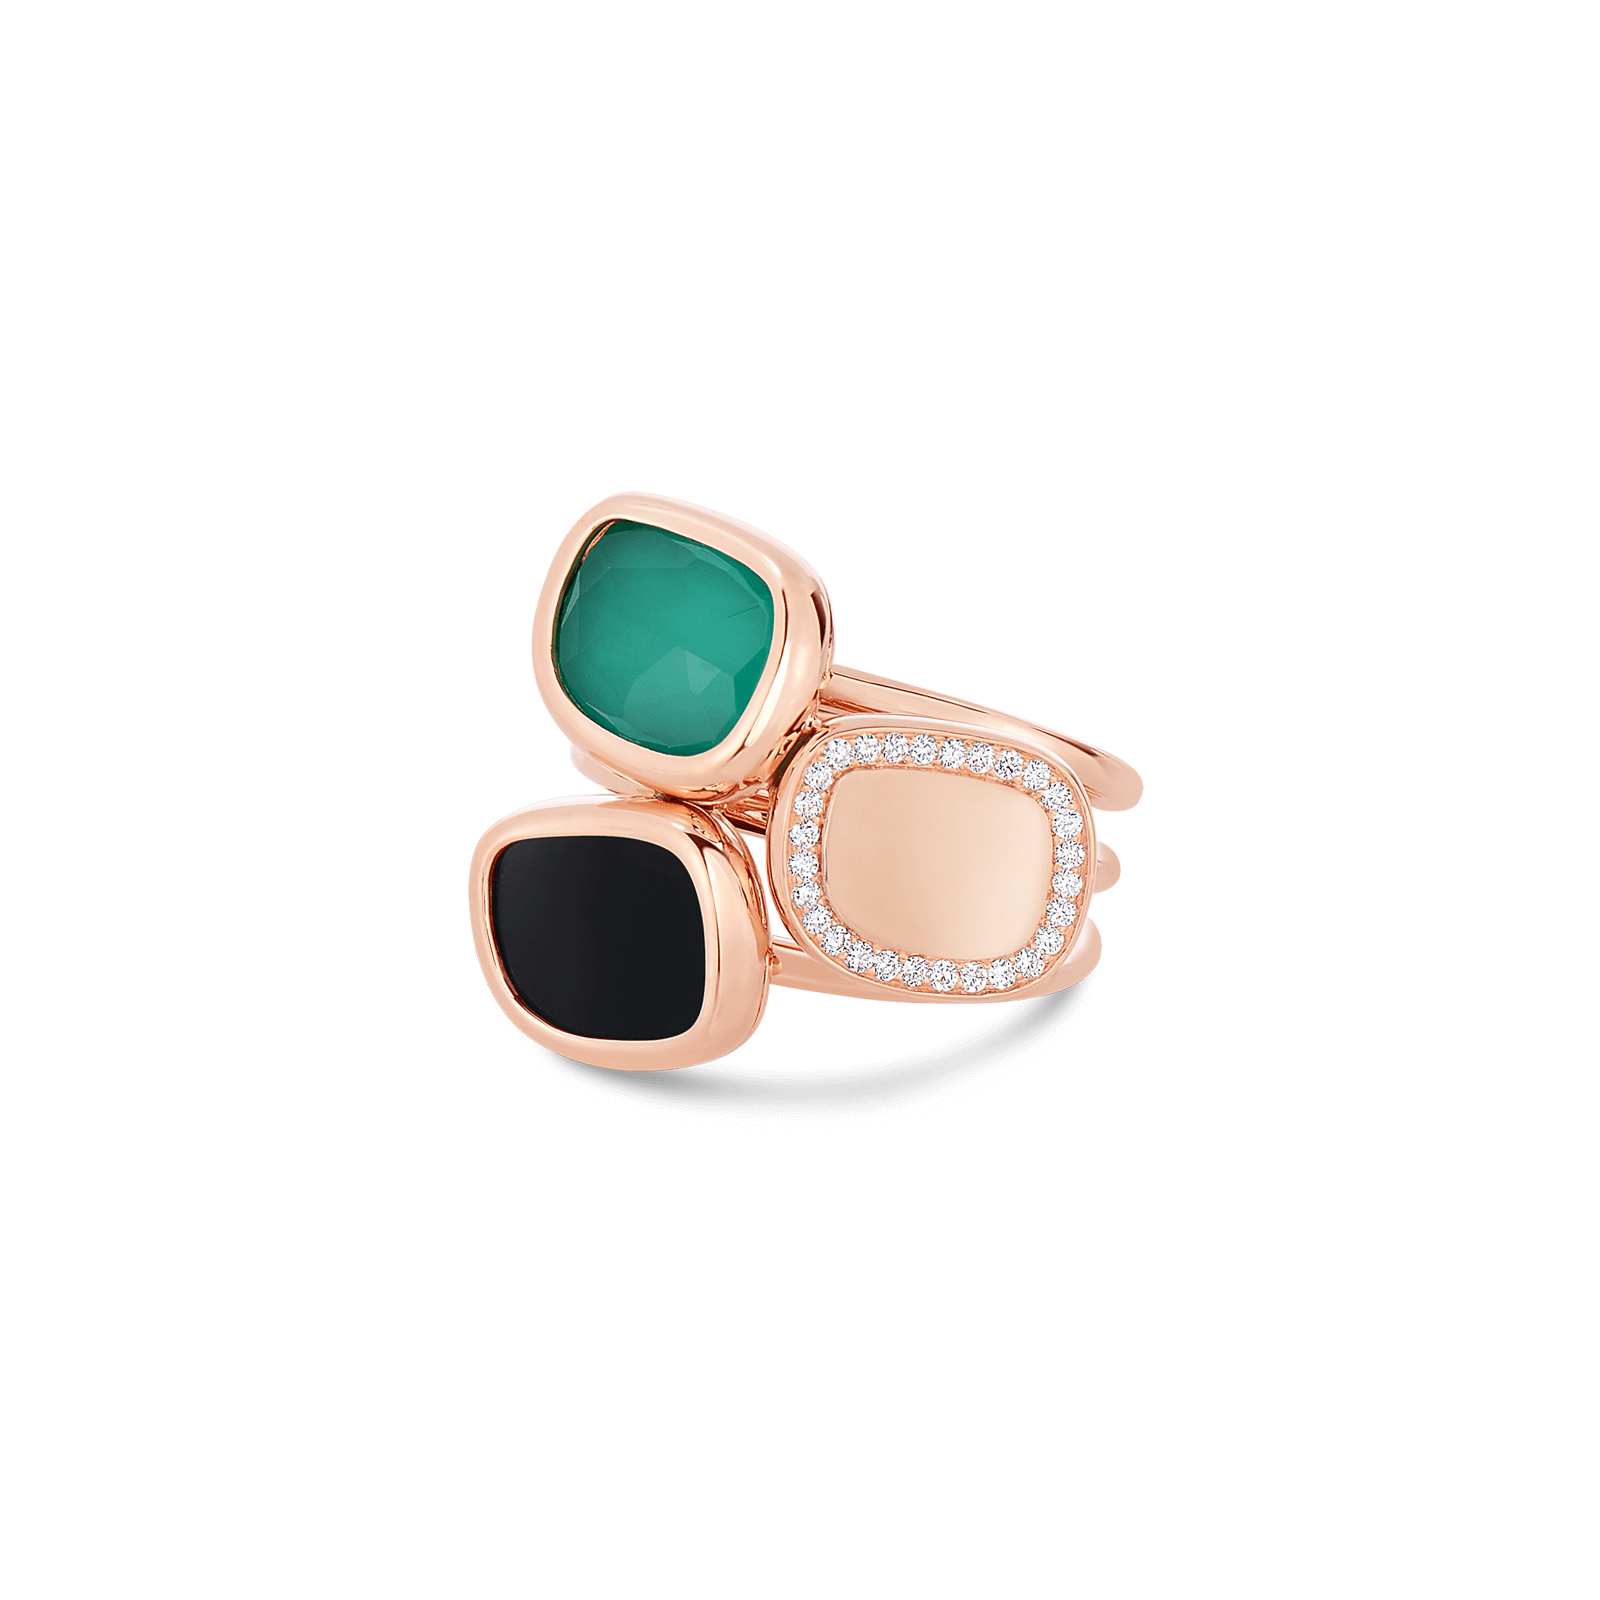 Roberto Coin Black Jade 18k Rose Gold Ring With Black Jade And Quartz And Diamonds